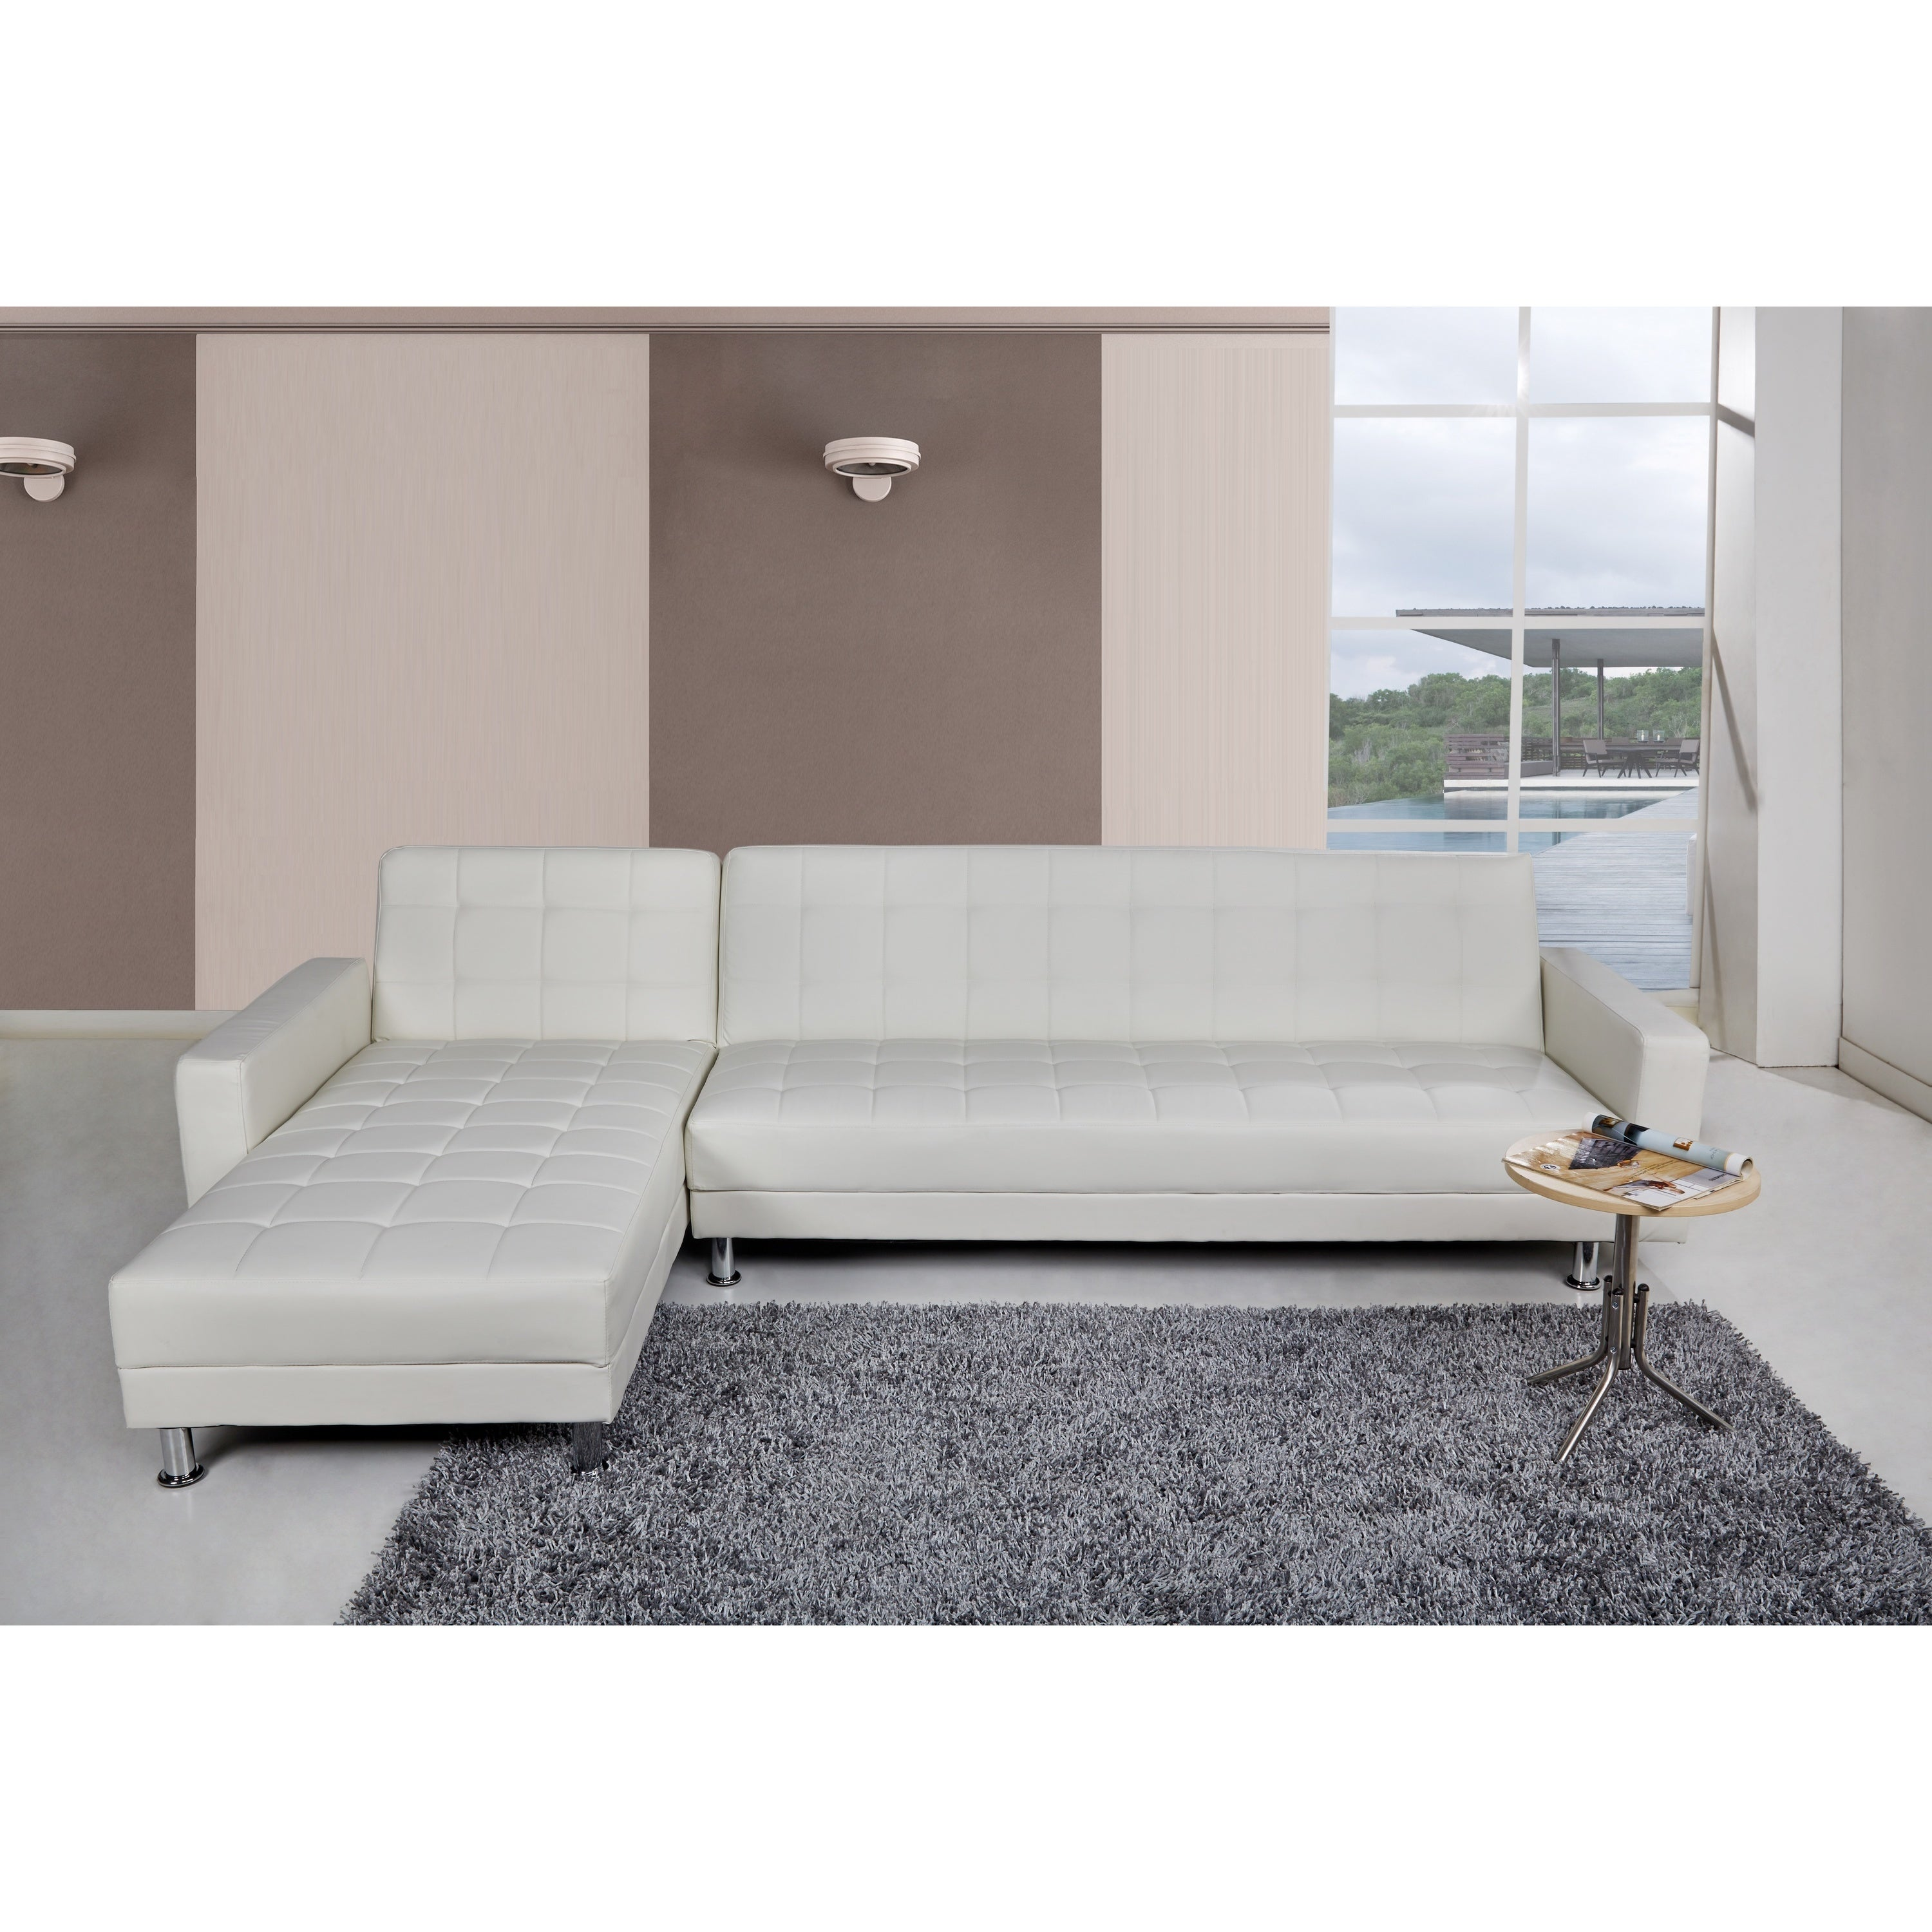 Shop Frankfort White Convertible Sectional Sofa Bed Free Shipping